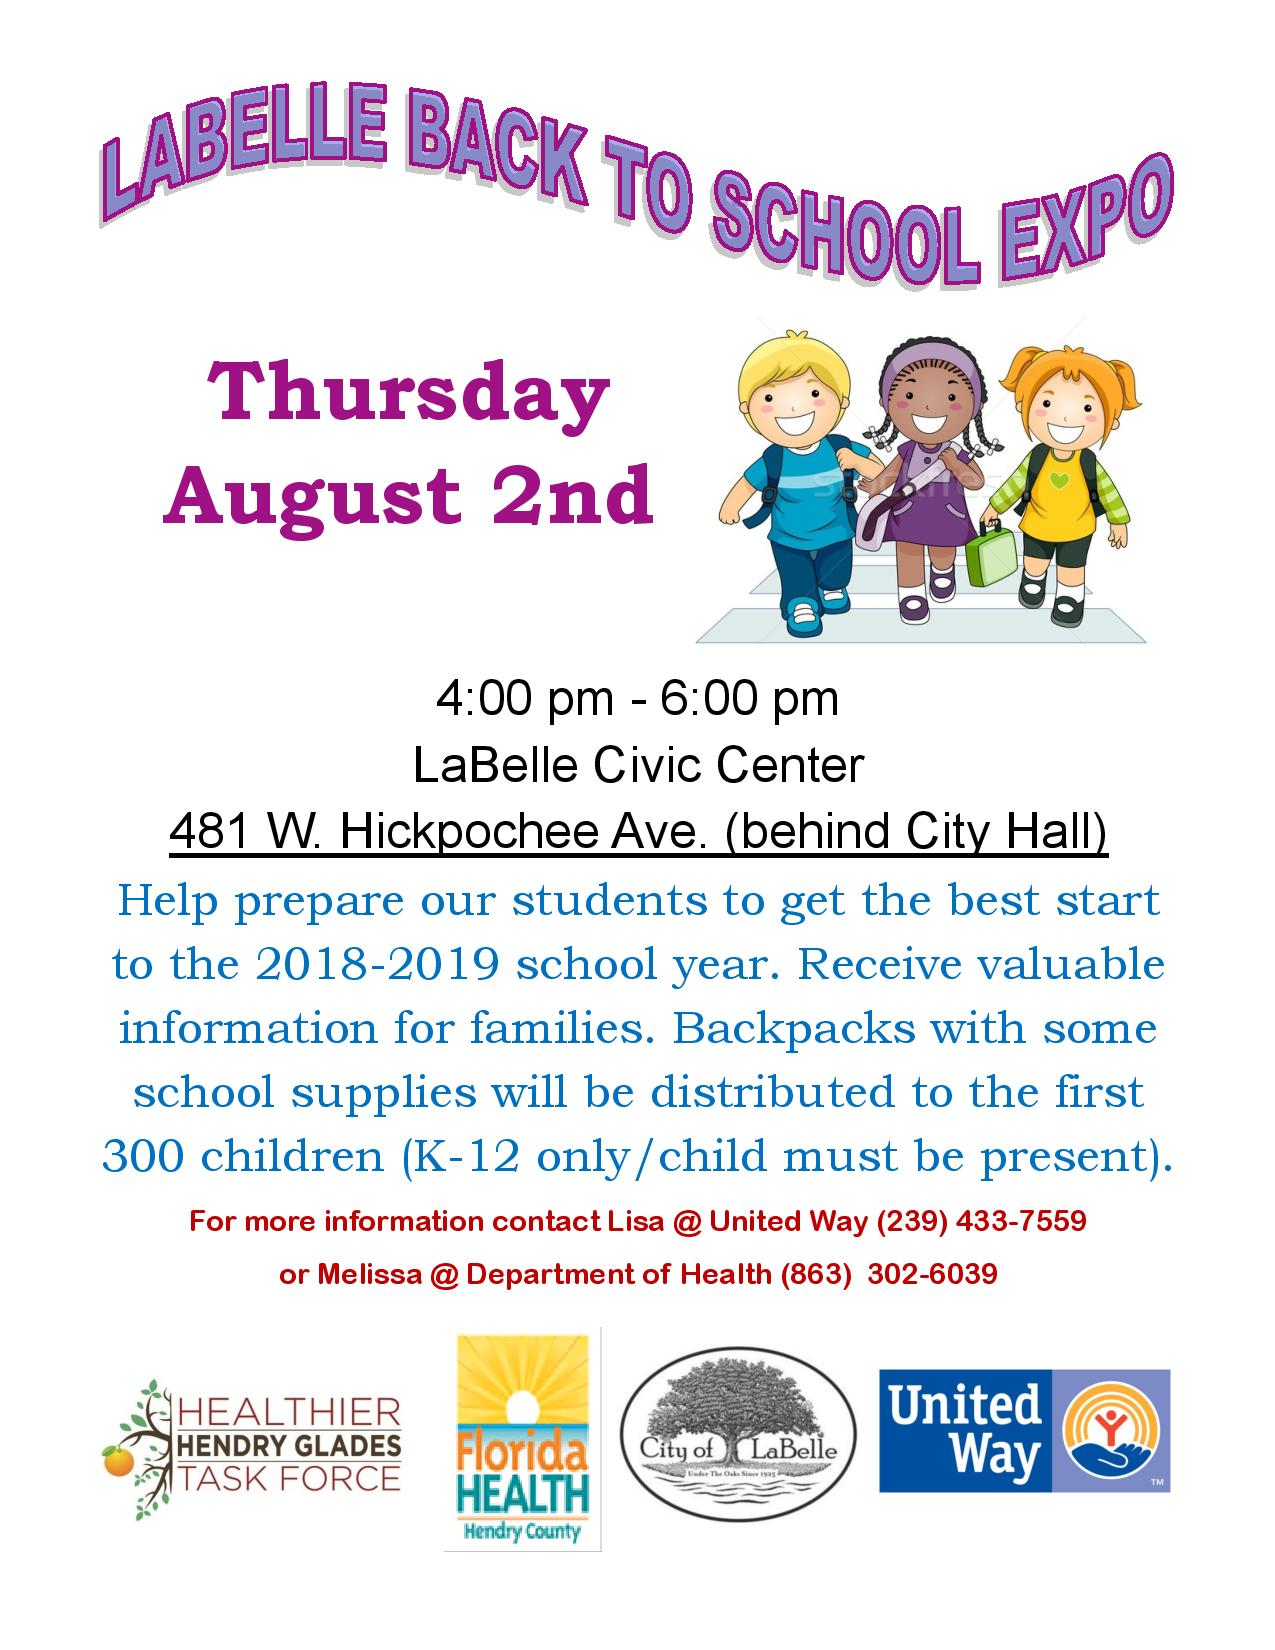 LaBelle Back to School Expo flyer 8.2.18-page-001.jpg